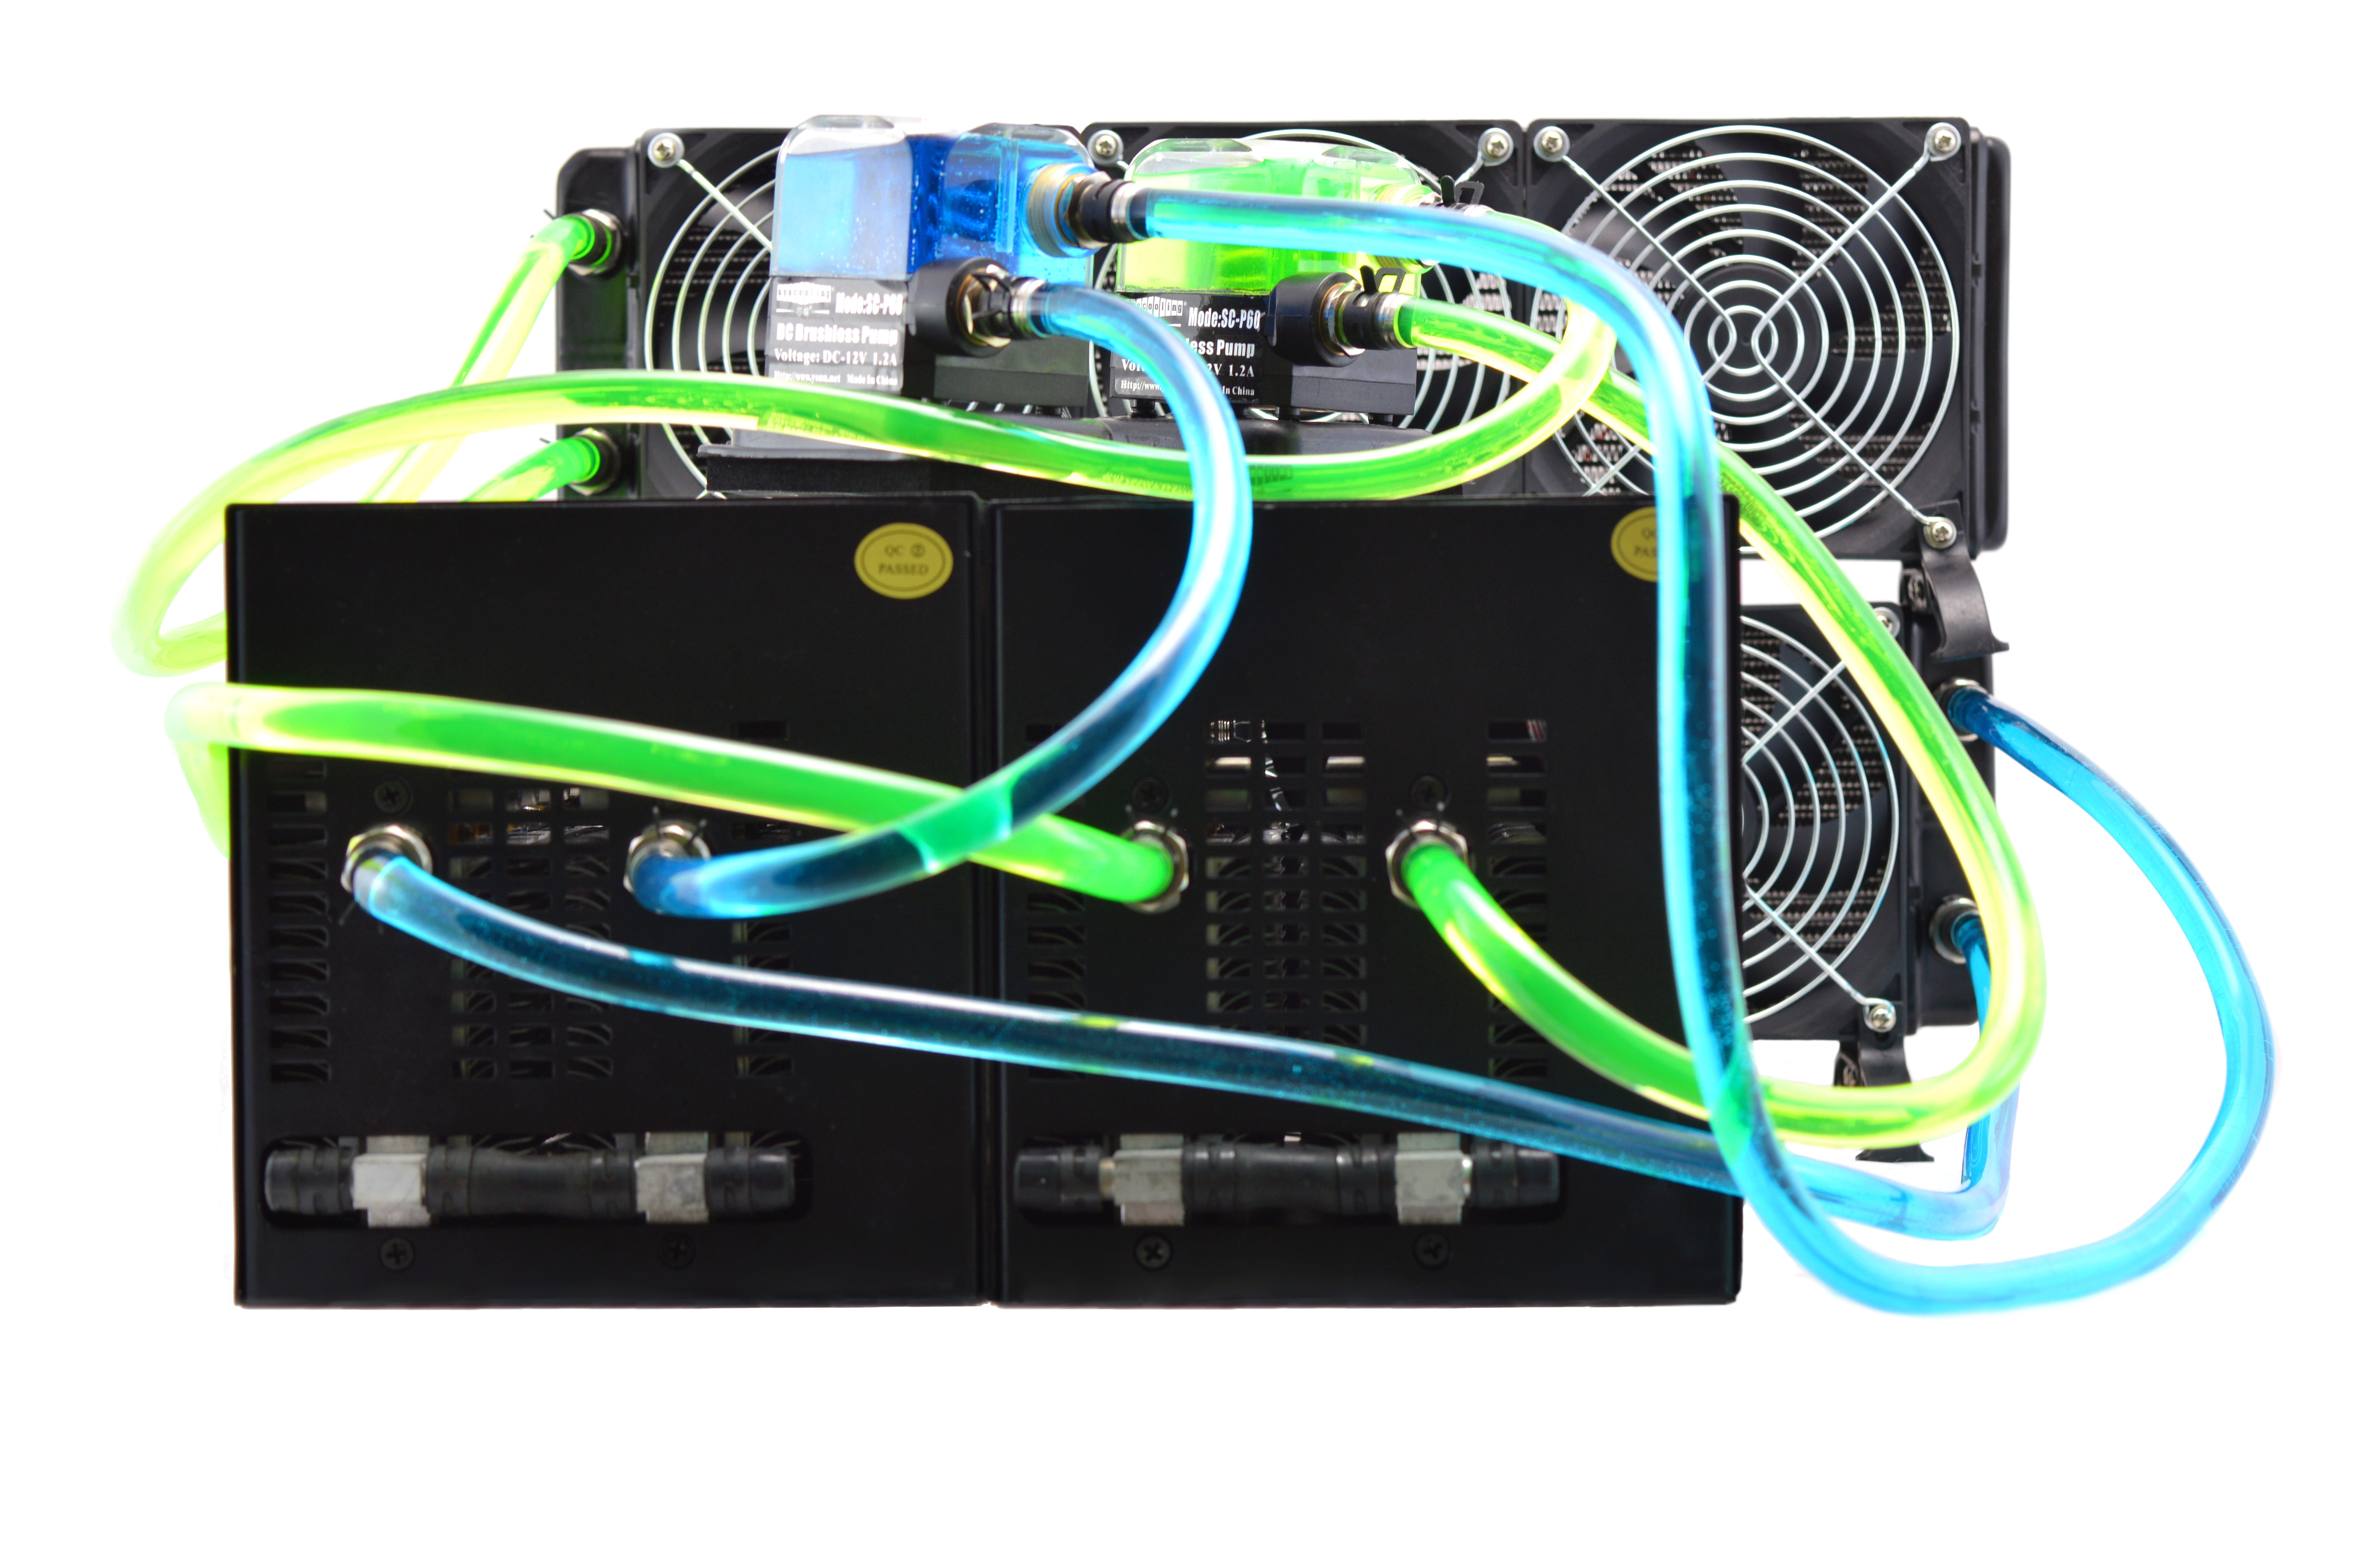 Antminer S3 Power Supply Antminer S3 Starts Then Stop With Red Light